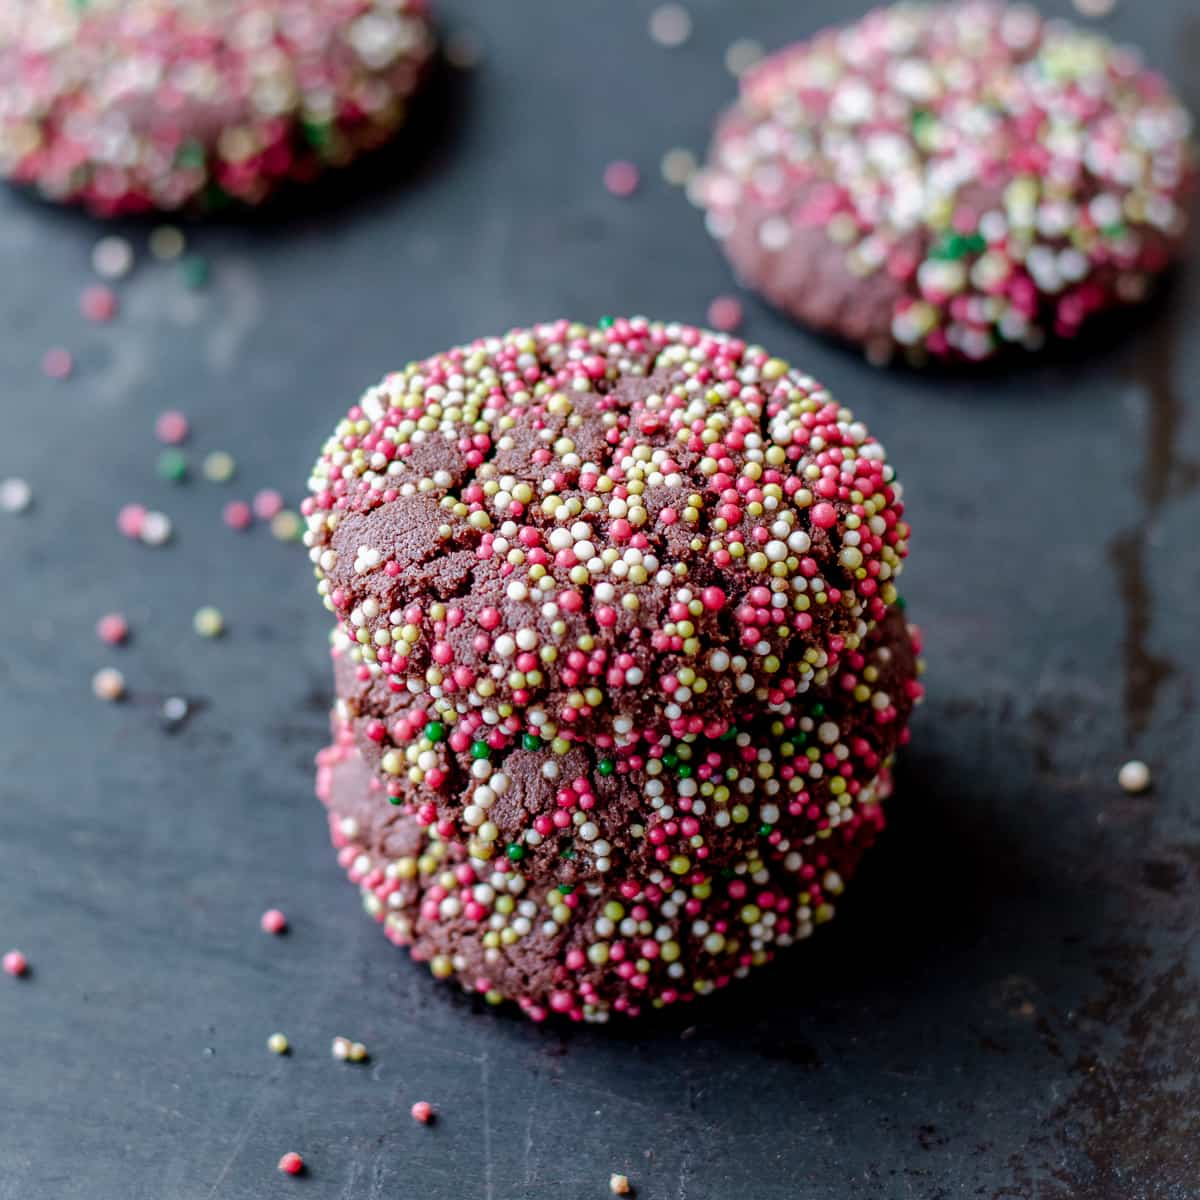 Christmas chocolate cookes covered in red, white and green spinkles